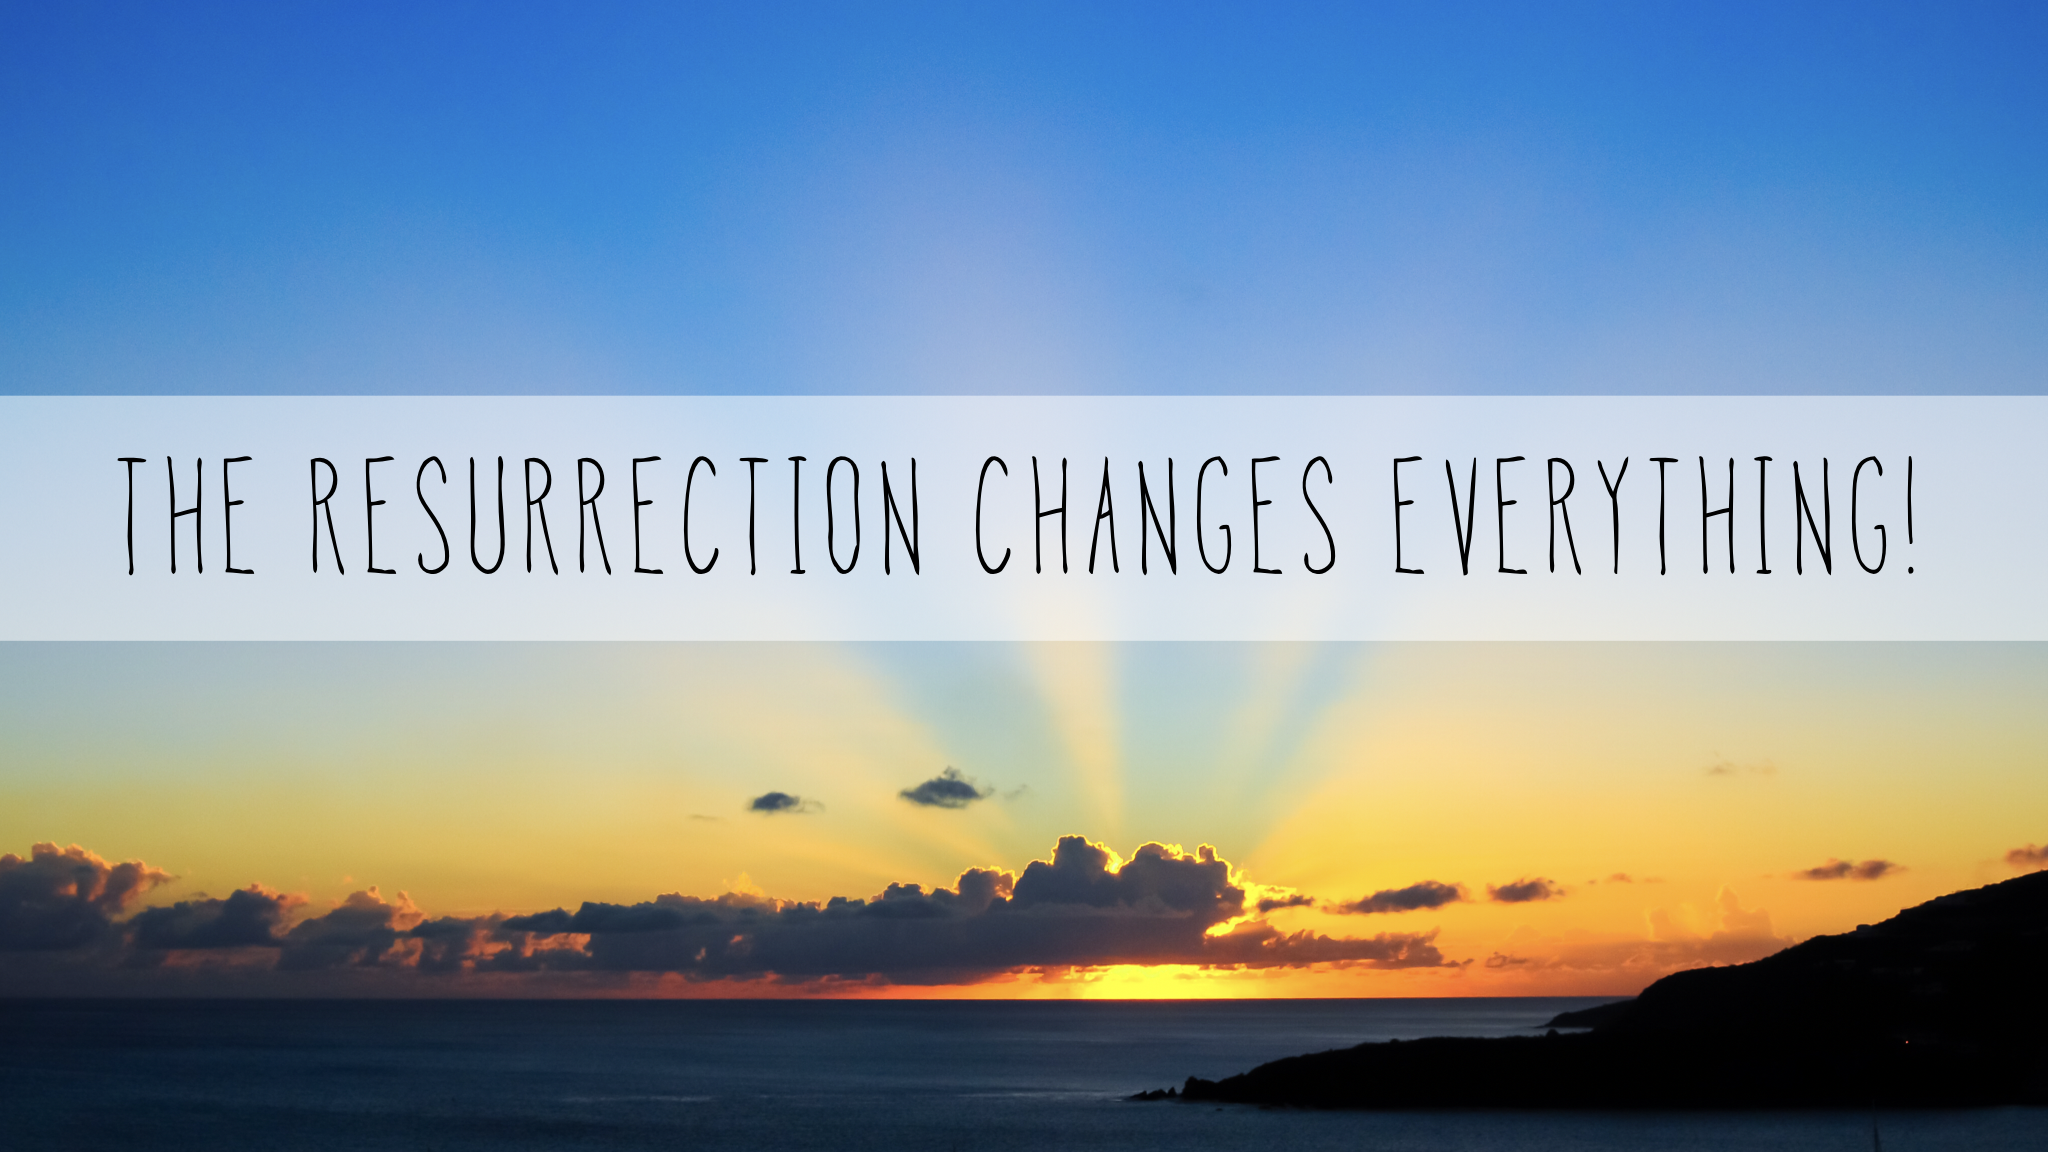 May 12, 2019 - The Resurrection Changes Everything : From Inside Out(Rev. Victor Nelson)